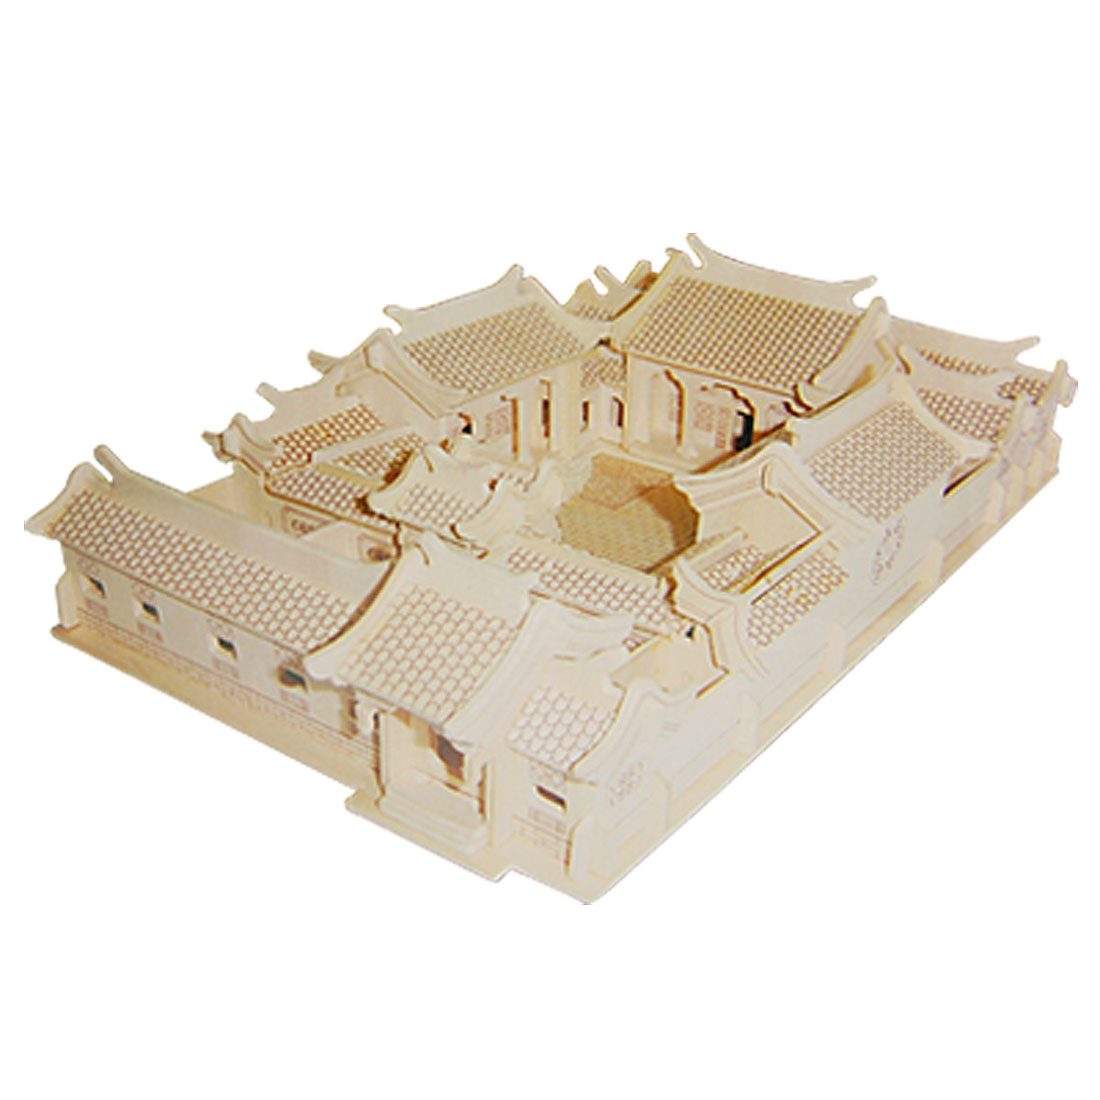 BeiJing Quadrangle Courtyard House Model Woodcraft Construction Kit